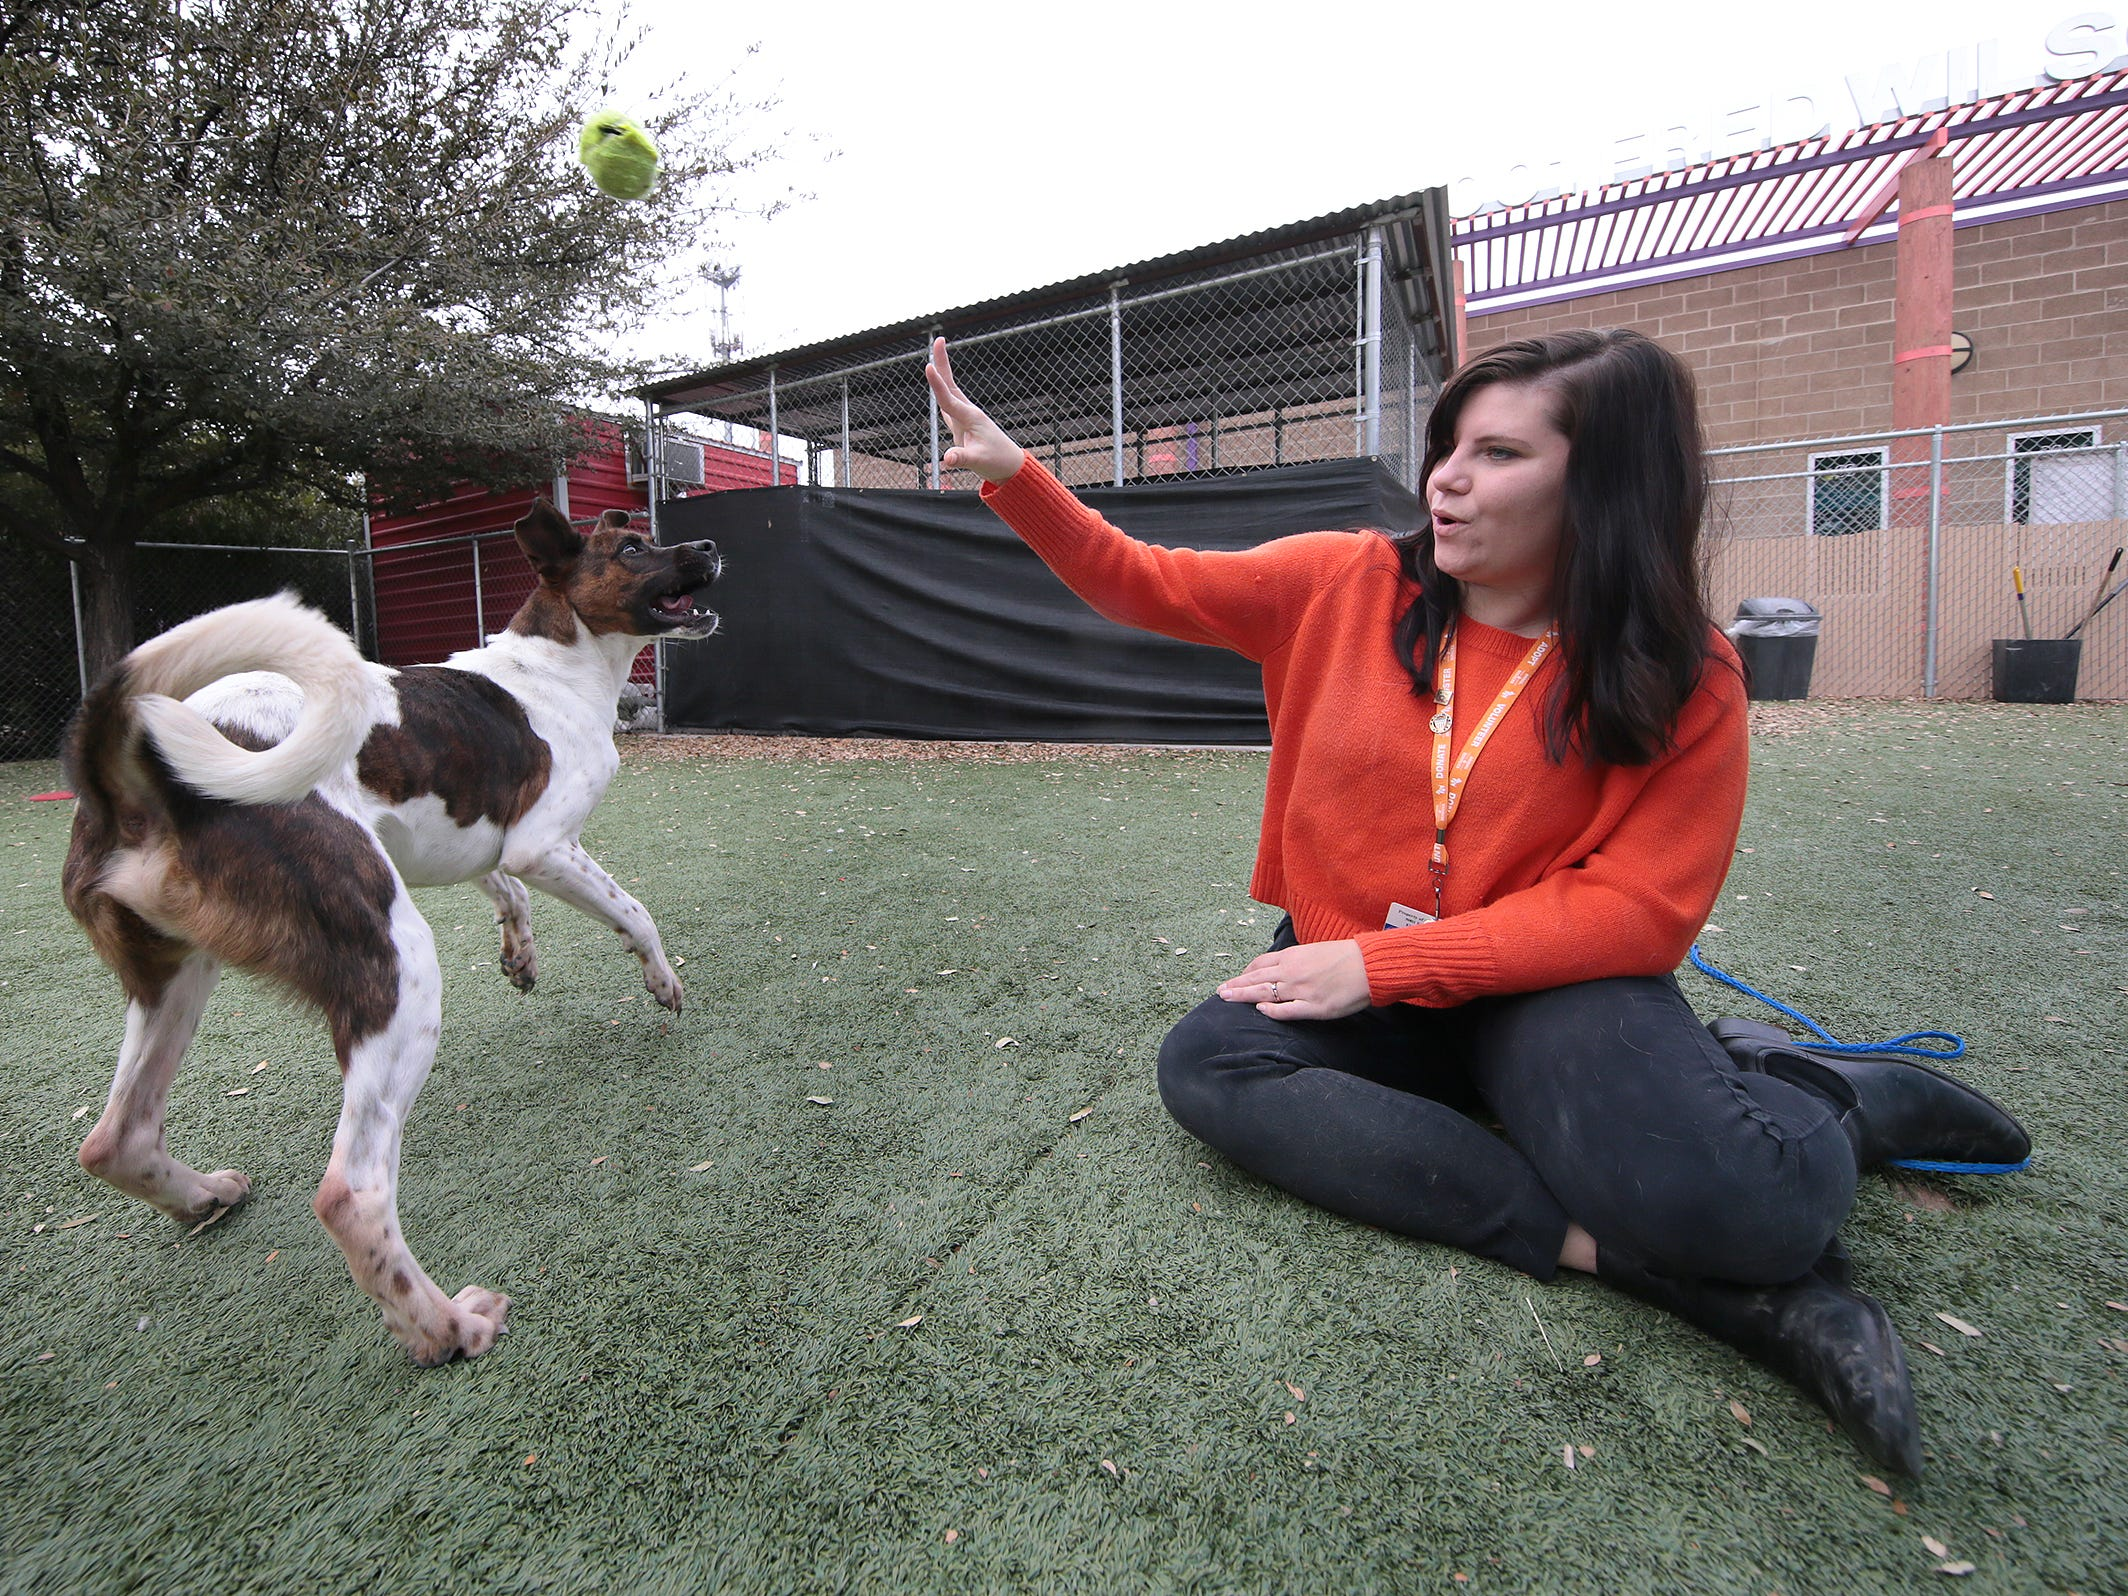 Michelle Anderson plays with Tony in the meet-and-greet area Wednesday, Jan. 30, 2019. The city of El Paso's Animal Services department is preparing for its free adoption day Saturday. The shelter needs to make room for an expected influx of animals in the spring.